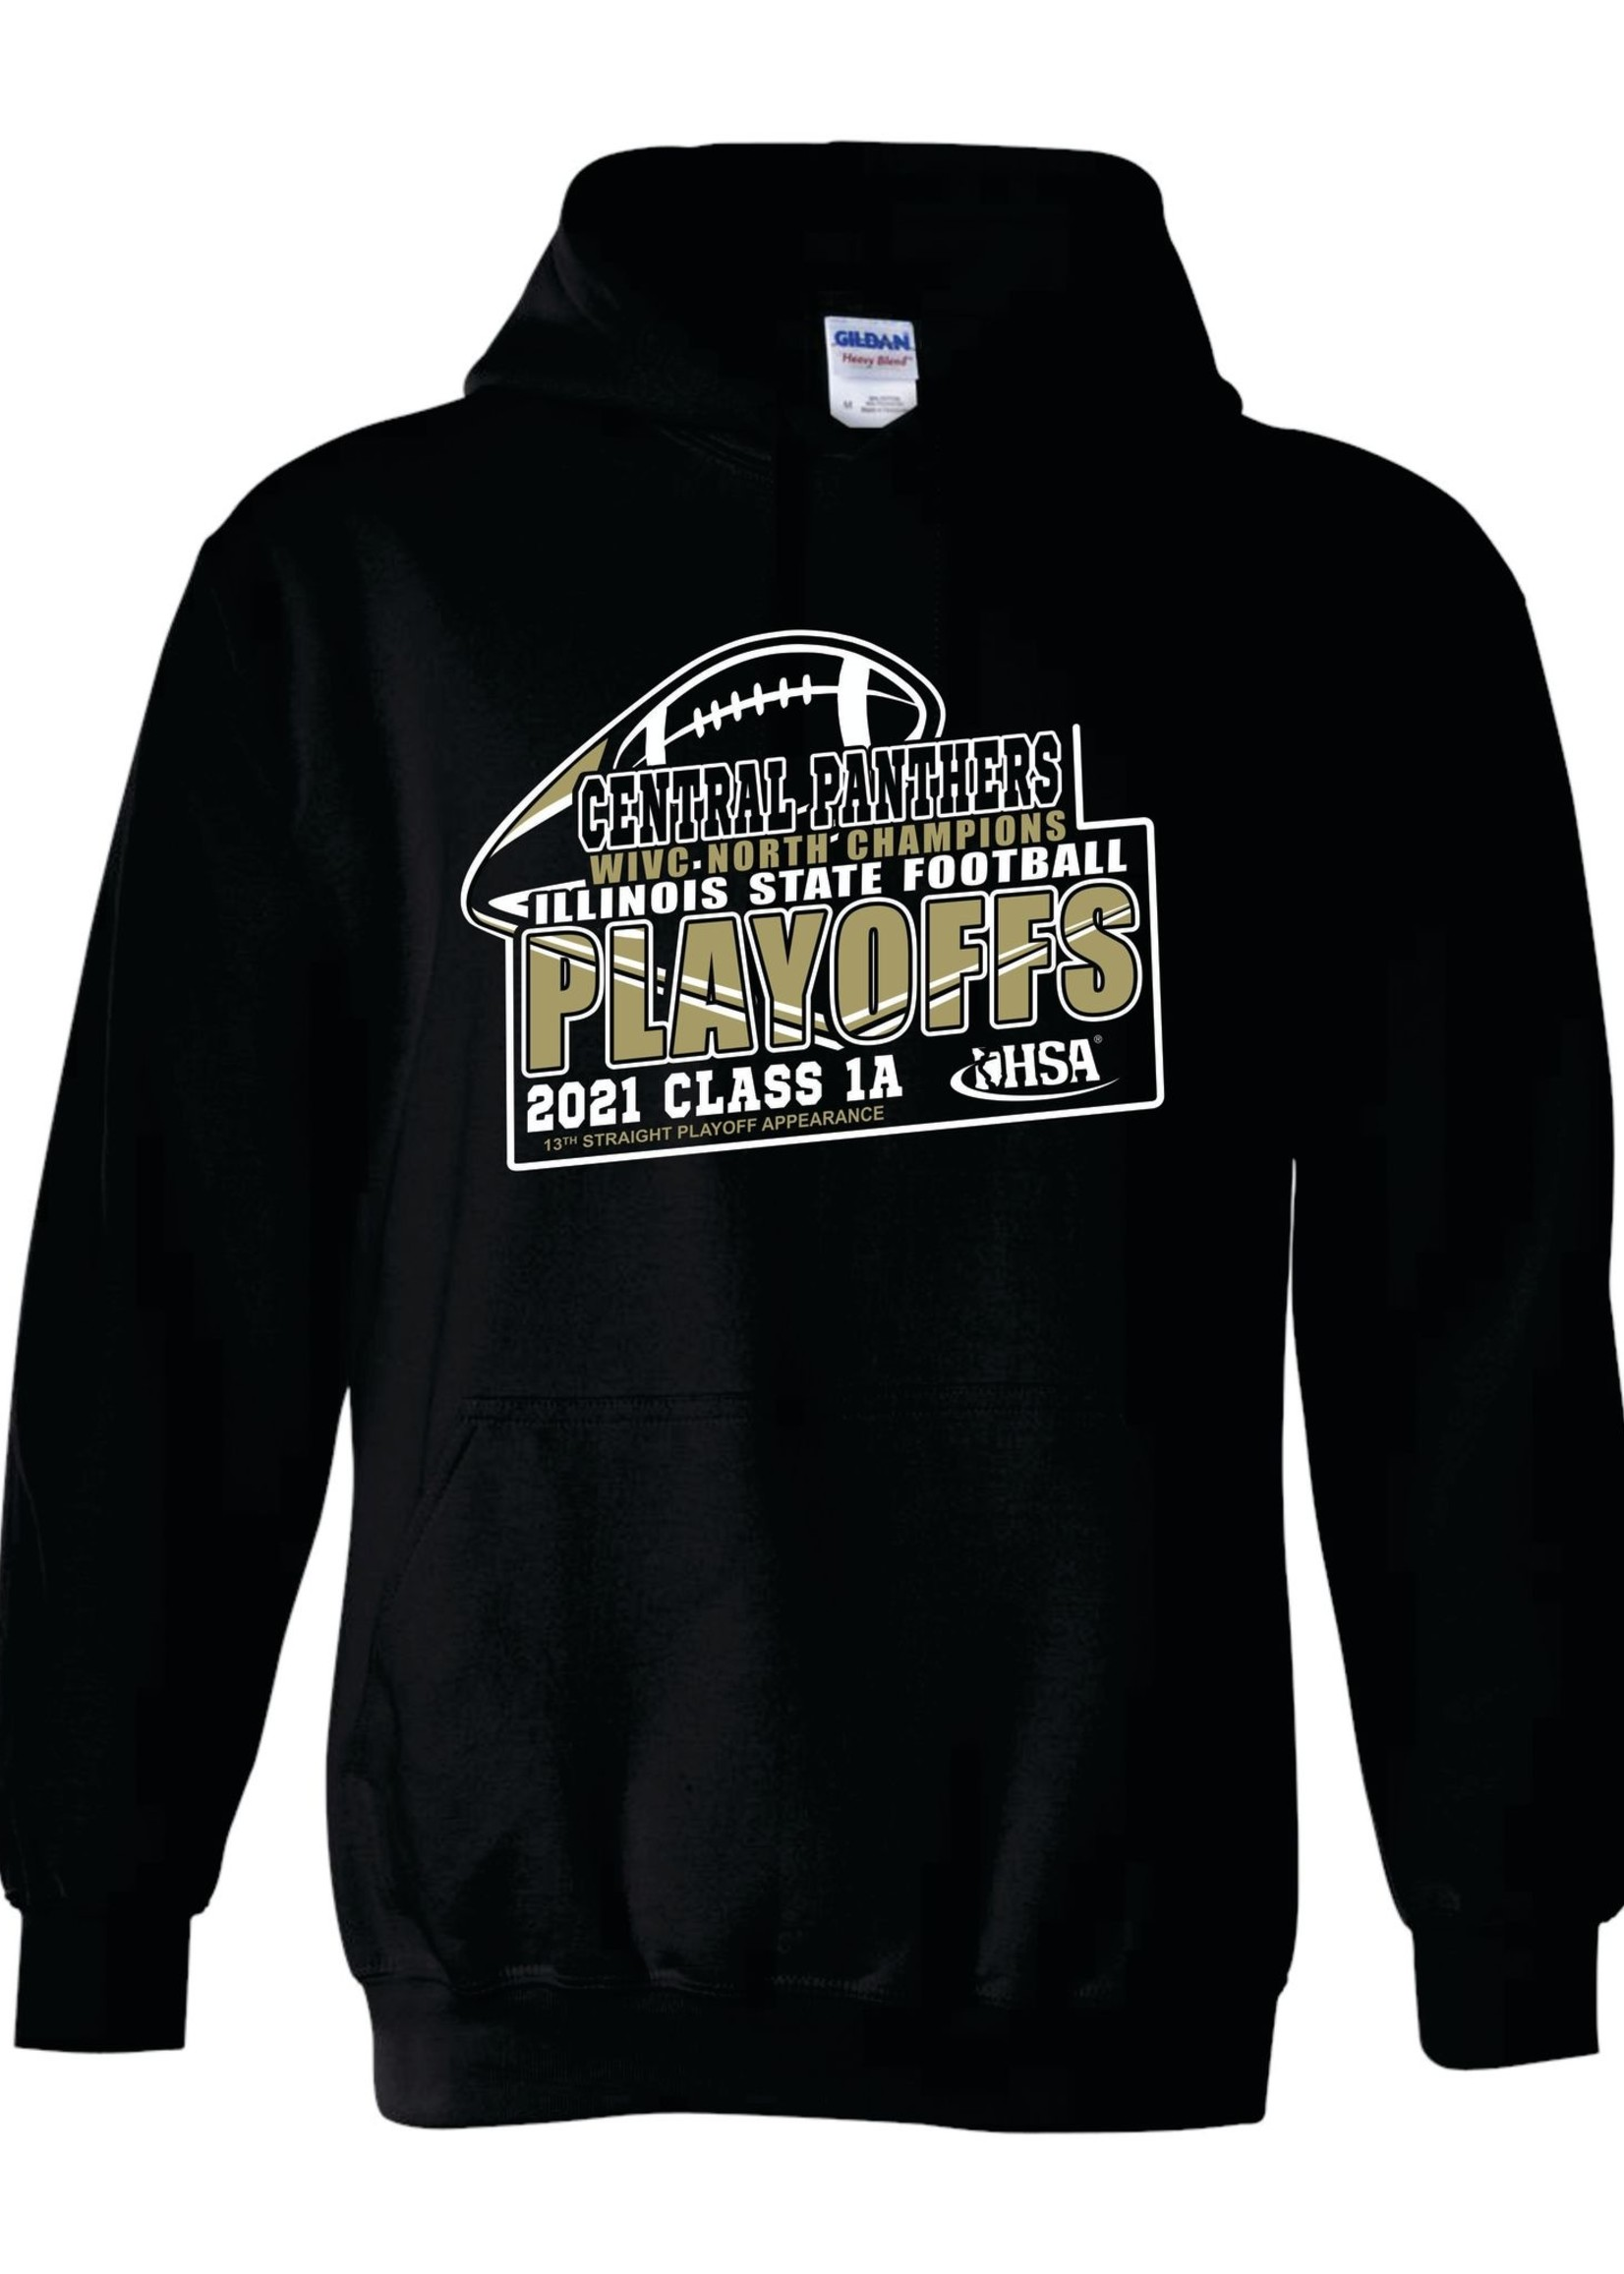 2021 Central Playoff hoodies